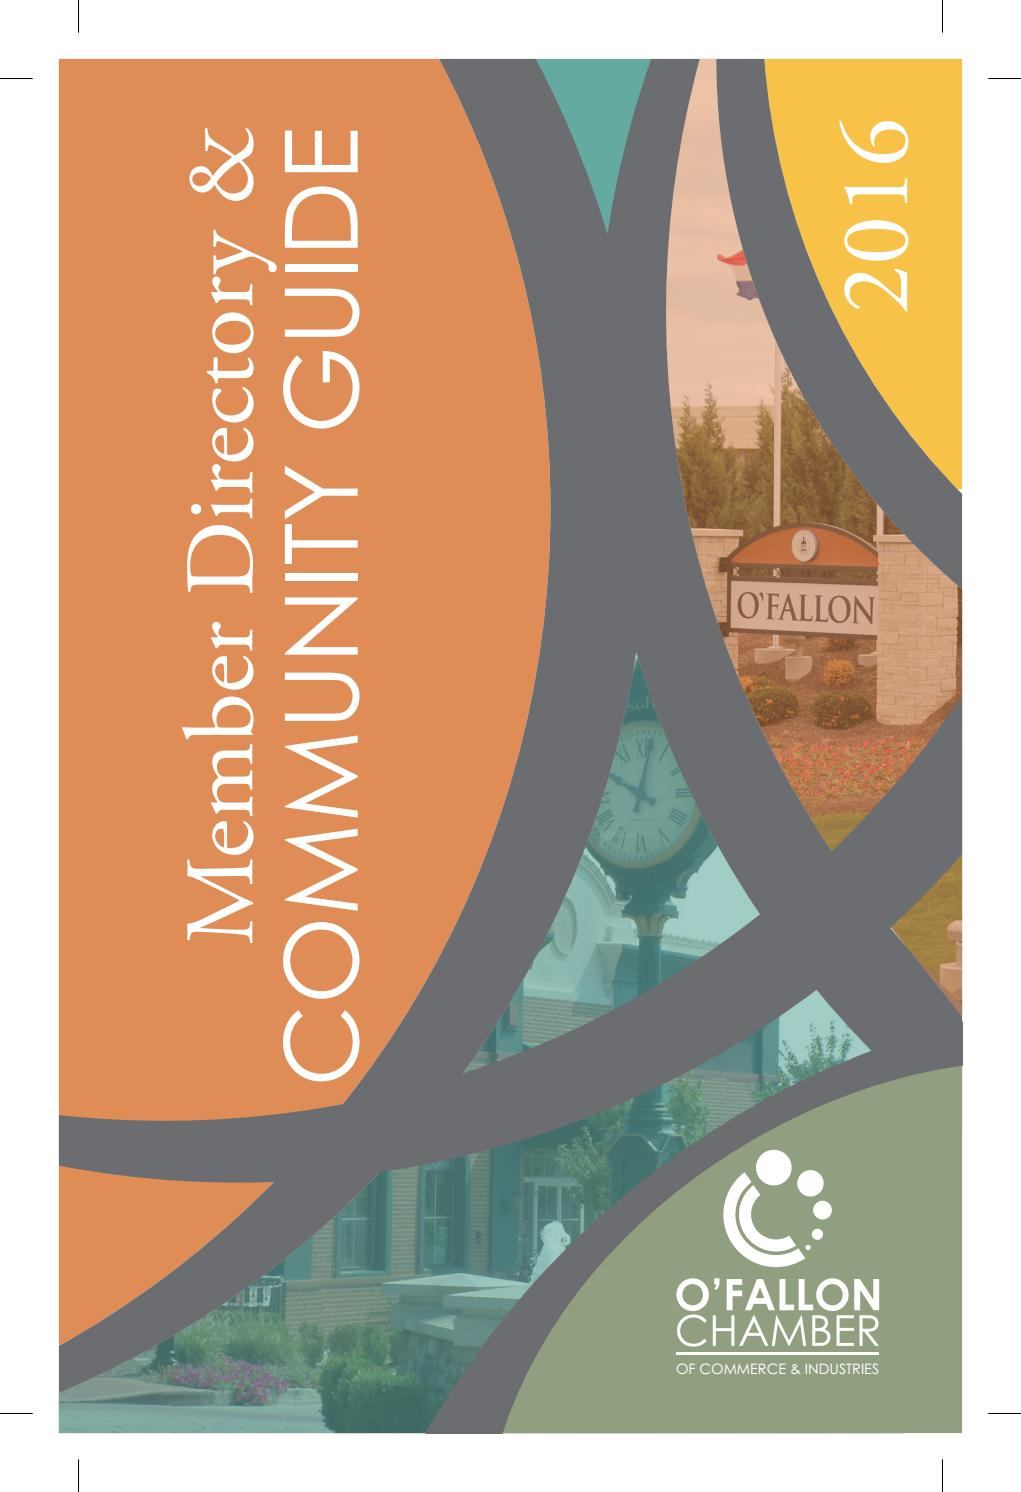 o'fallon chamber 2016 directory & community guide by o'fallon